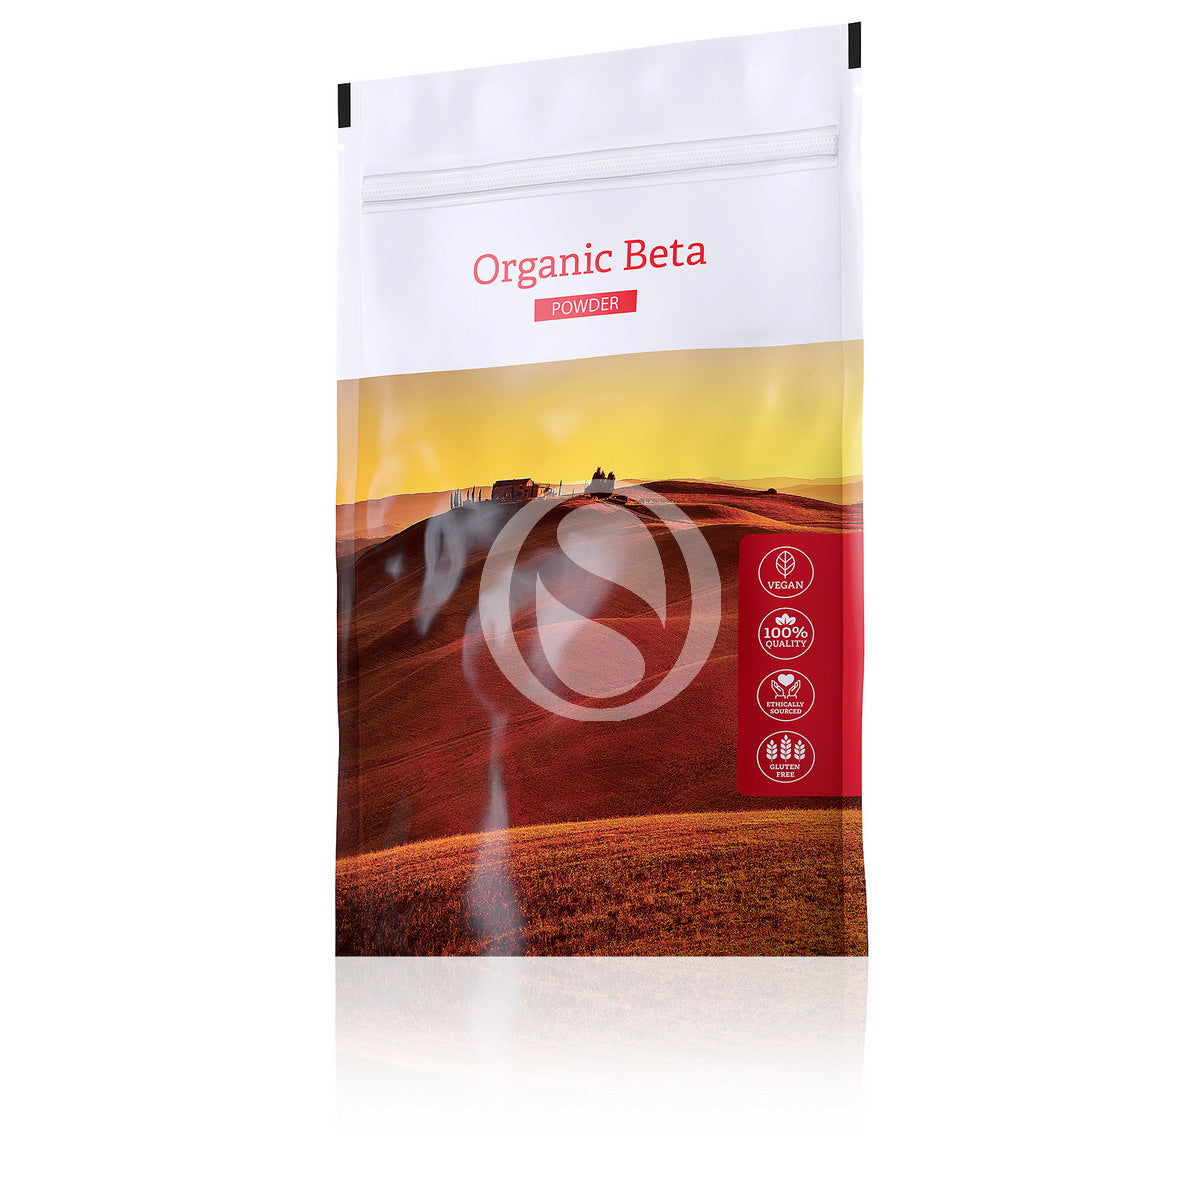 ORGANIC BETA Powder 100g biopersonalisiert*